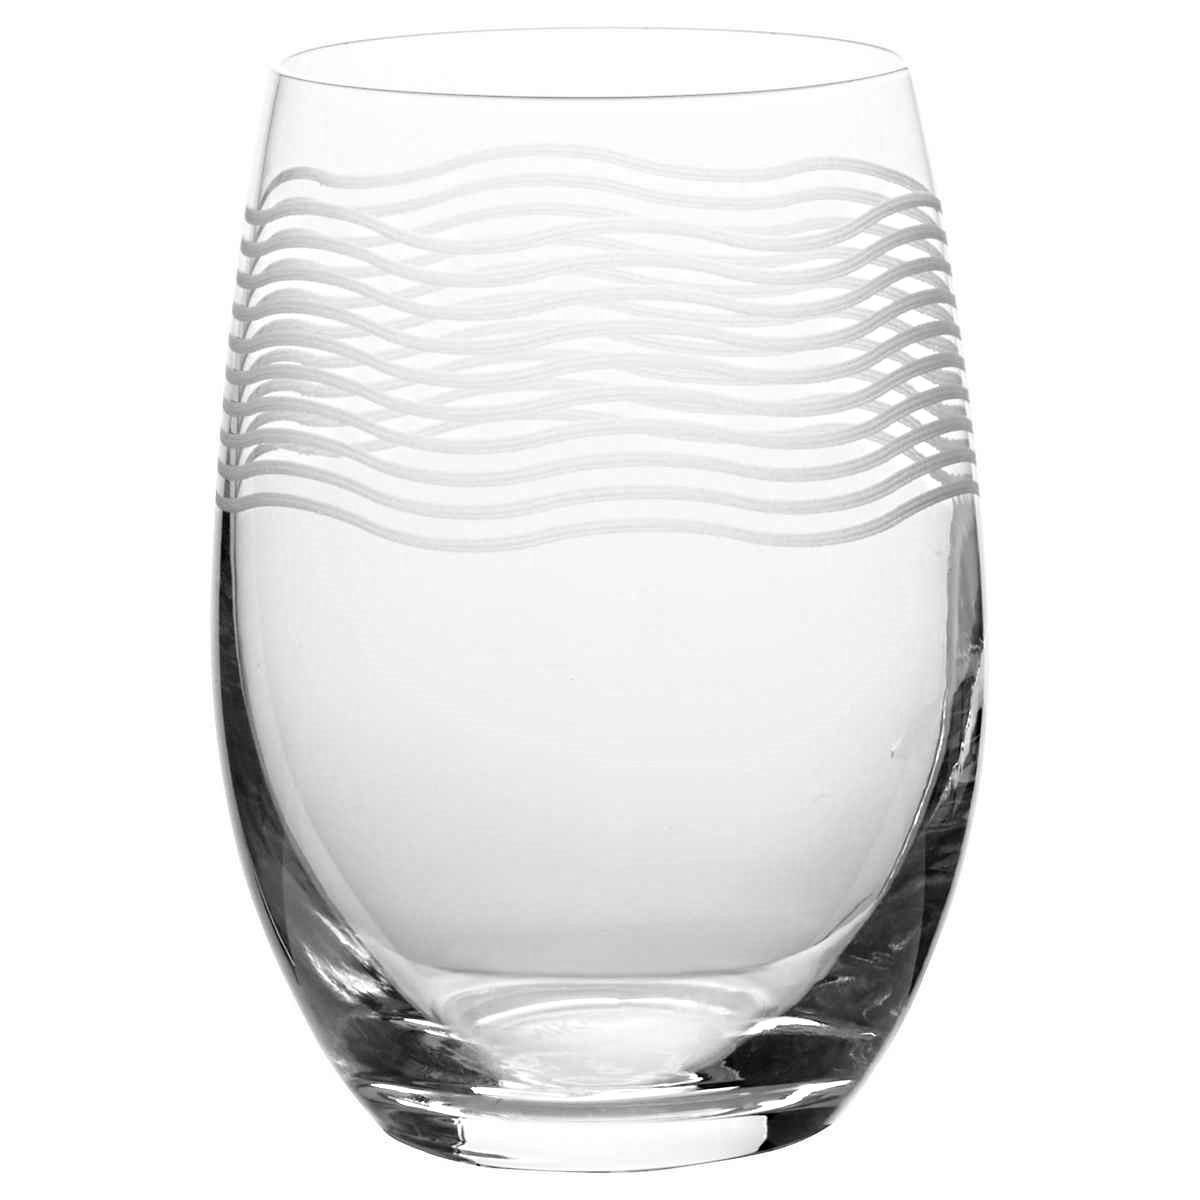 Mikasa Cheers Stemless Etched Wine Glasses, Fine European Lead-Free Crystal, 17-Ounces for Red or White Wine - Set of 6 by Mikasa (Image #4)